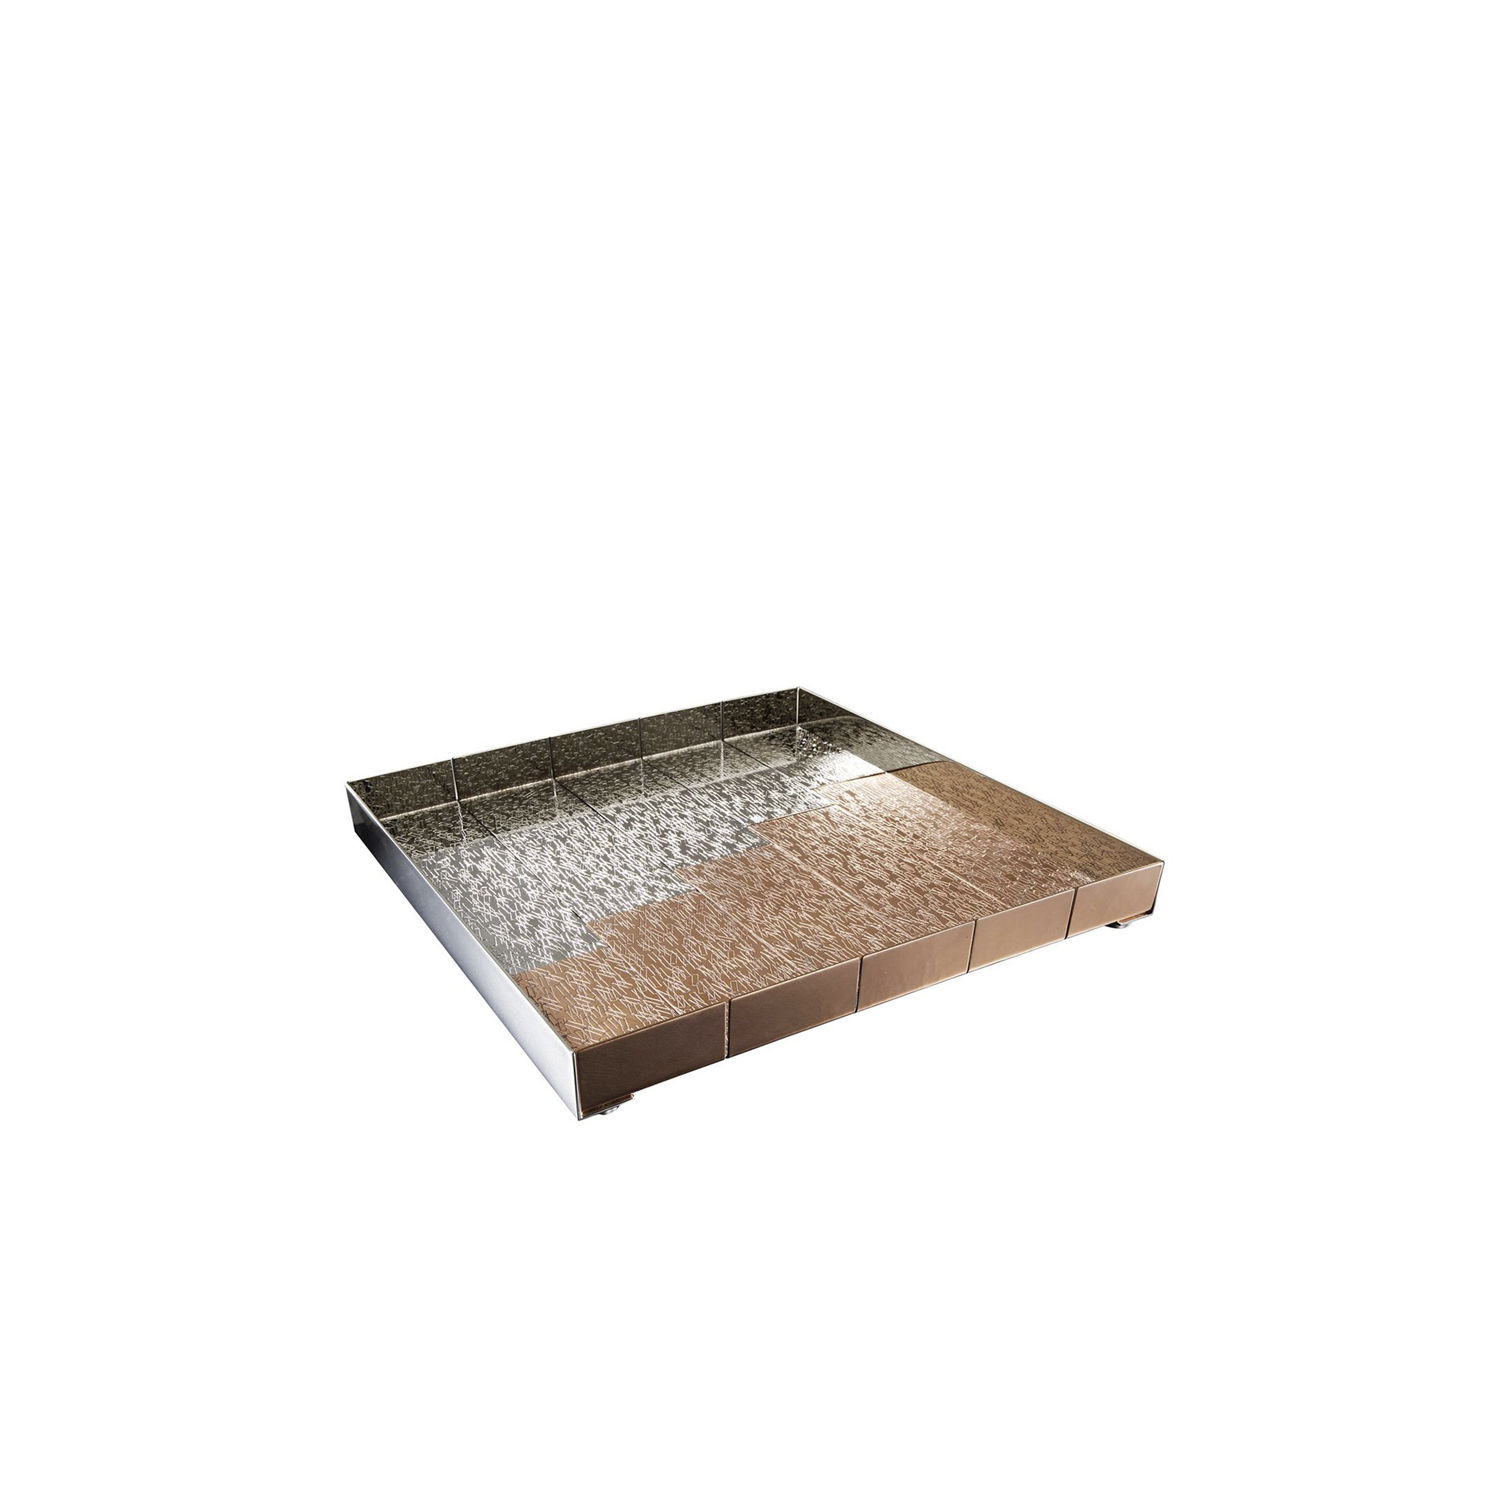 Accordi Tray - Square Tray in copper and white bronze. This tray is characterized by the rectangular motif.